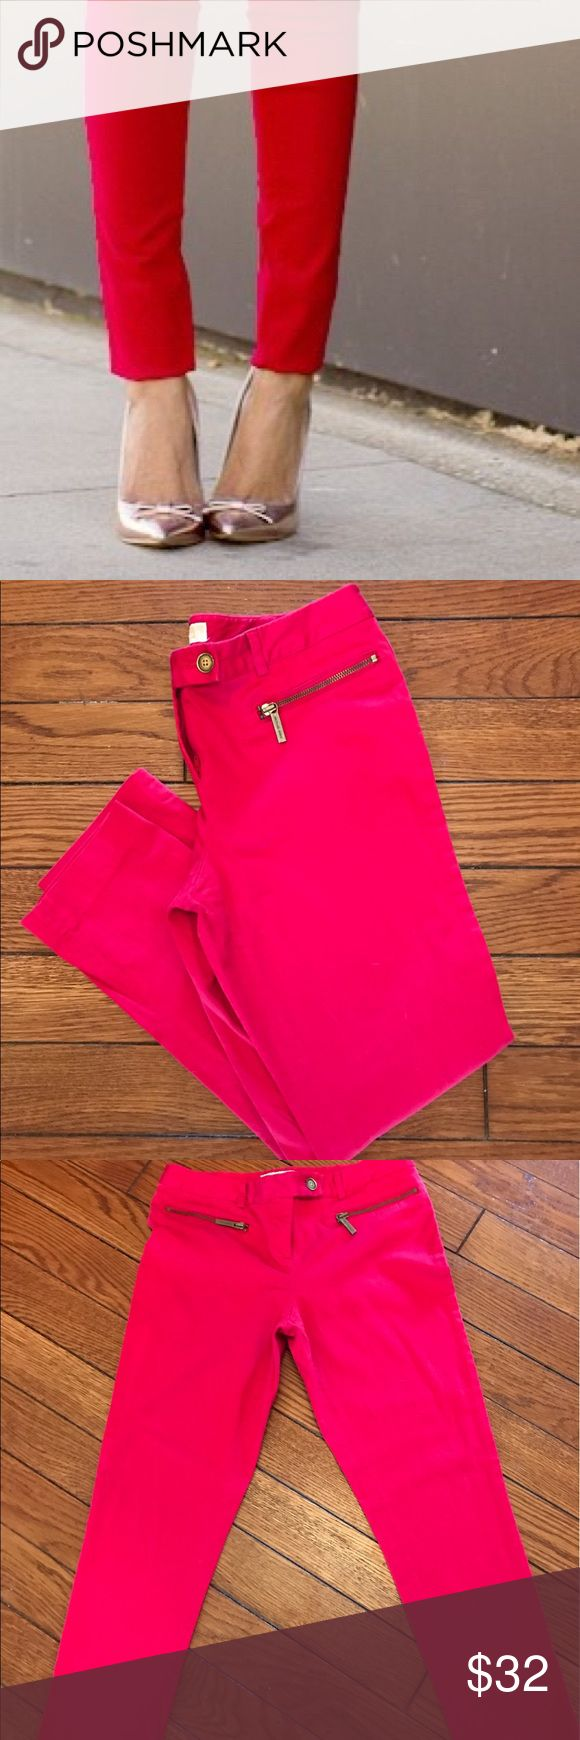 Michael Kors red skinny pants Michael Kors red, skinny pants.  Good used condition, zipper pockets in front.  26 inch inseam, 30 inch waist, 35 inch hips. KORS Michael Kors Pants Skinny